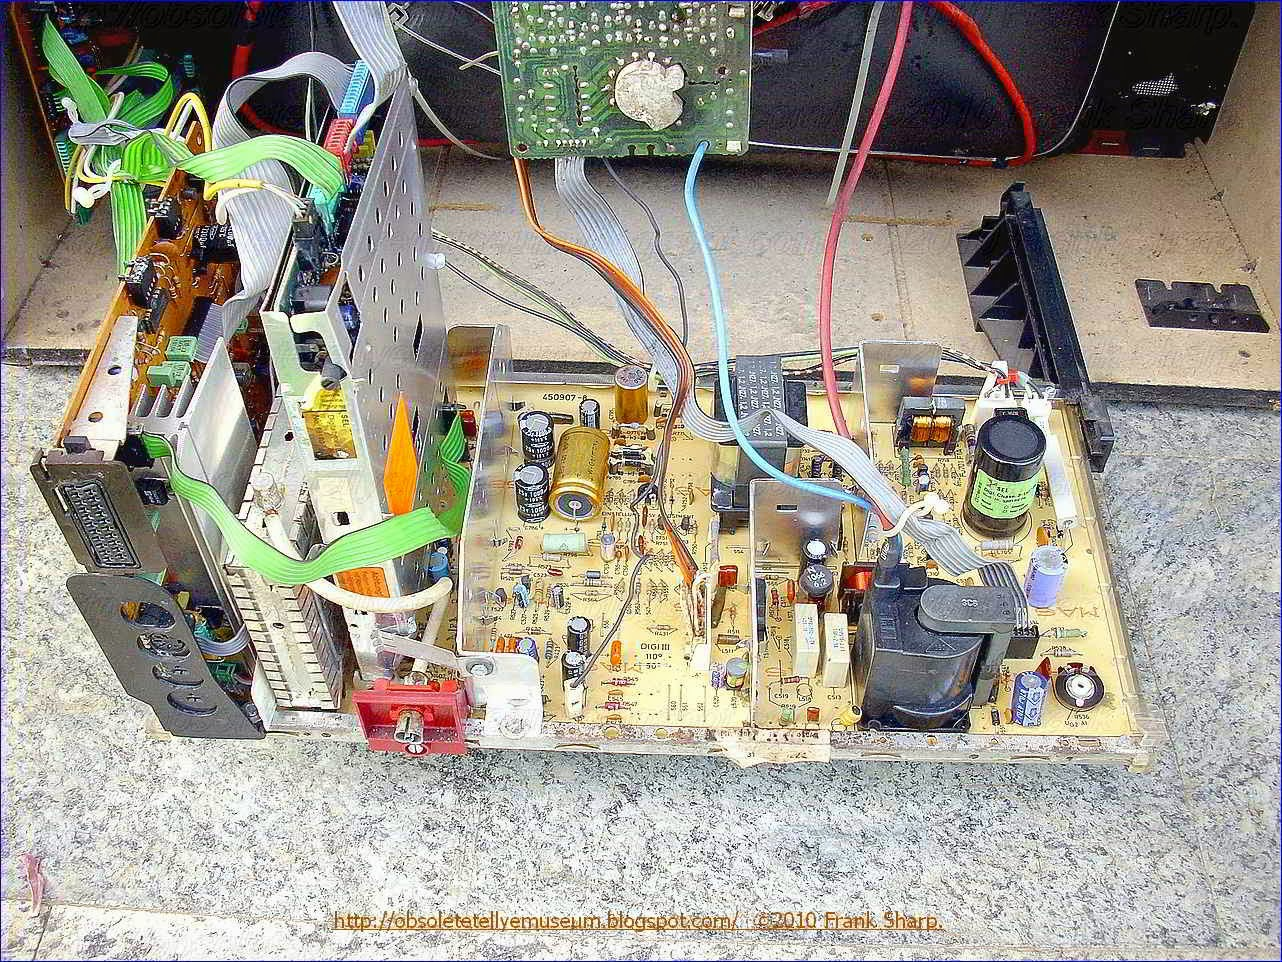 Obsolete Technology Tellye Itt Digivision 3876 Hifi Oscar Chassis 506 X 331 250 Kb Jpeg How To Wire A Gfci Circuit Digi 3 110 Is Which Stereo Degree Type Fitted In 20 Inches Mono Television Set